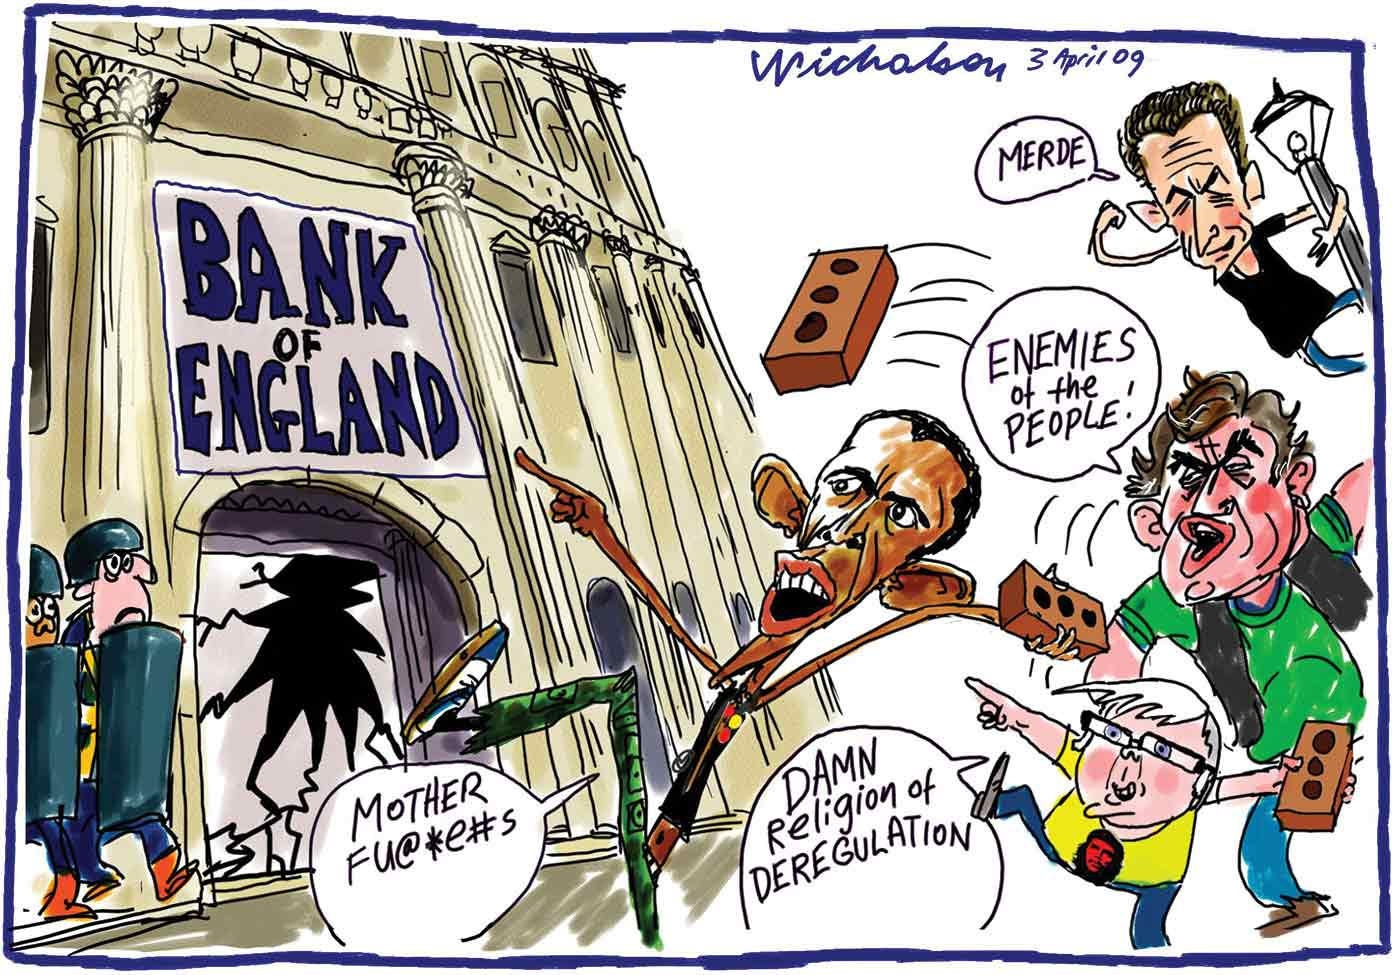 A colour cartoon depicting political leaders dressed as street thugs hurling bricks through a window at the 'Bank of England'. Barak Obama says, 'Mother fu@*e#s', Kevin Rudd says, 'Damn religion of deregulation', Gordon Brown says, 'Enemies of the people!' and the Nicolas Sarkozy swings from a light pole saying, 'Merde'. Two riot police cower beside the broken window. - click to view larger image